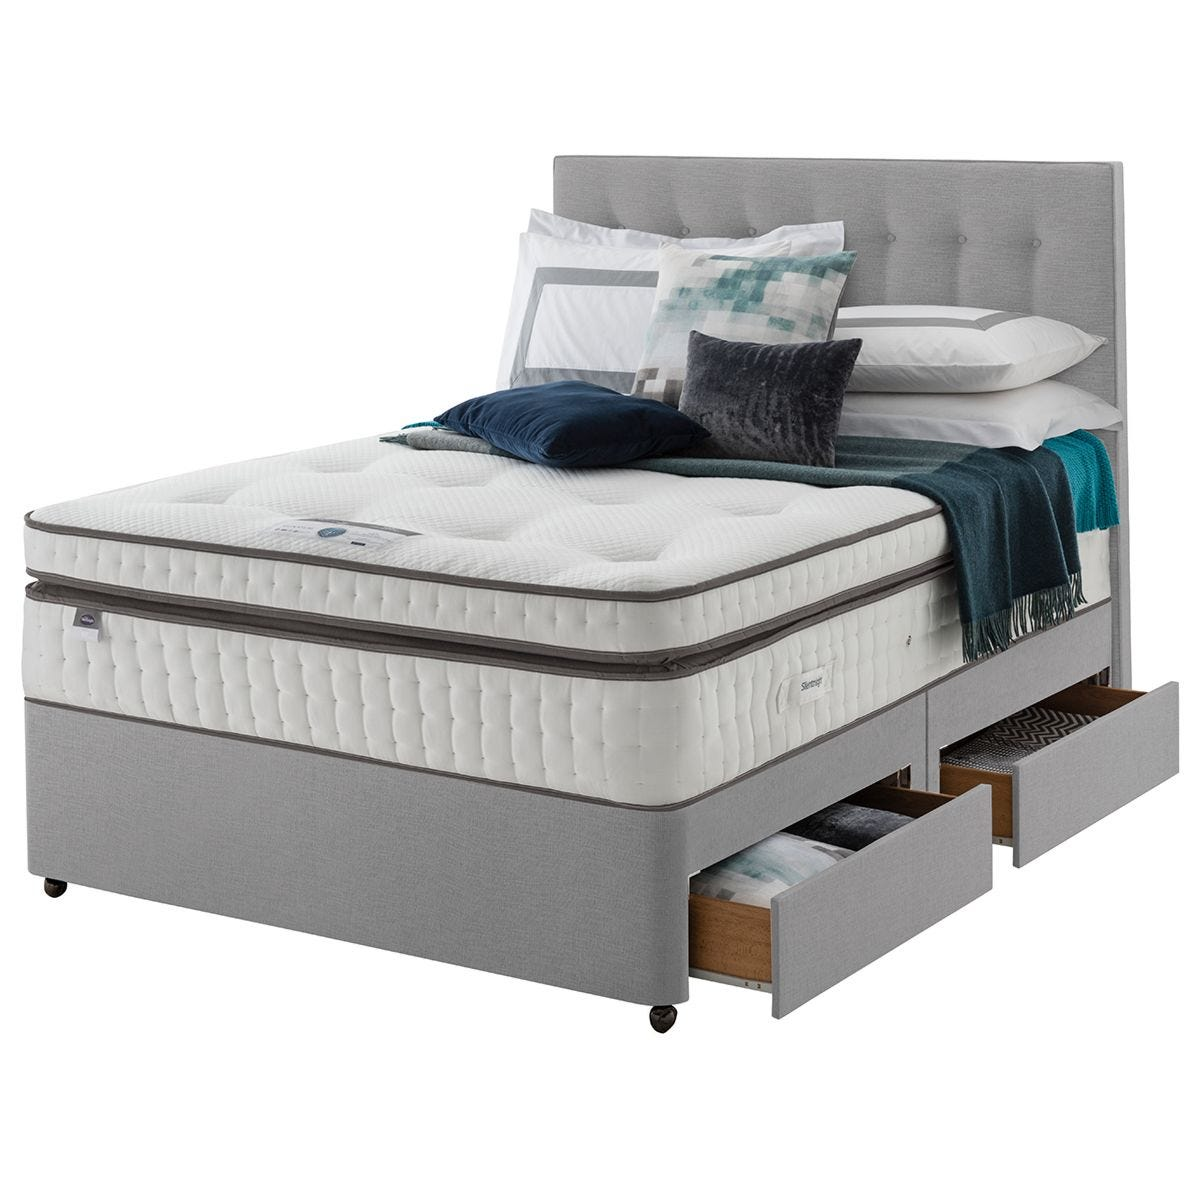 Silentnight Mirapocket Geltex 2000 4 Drawer Divan Bed - Grey